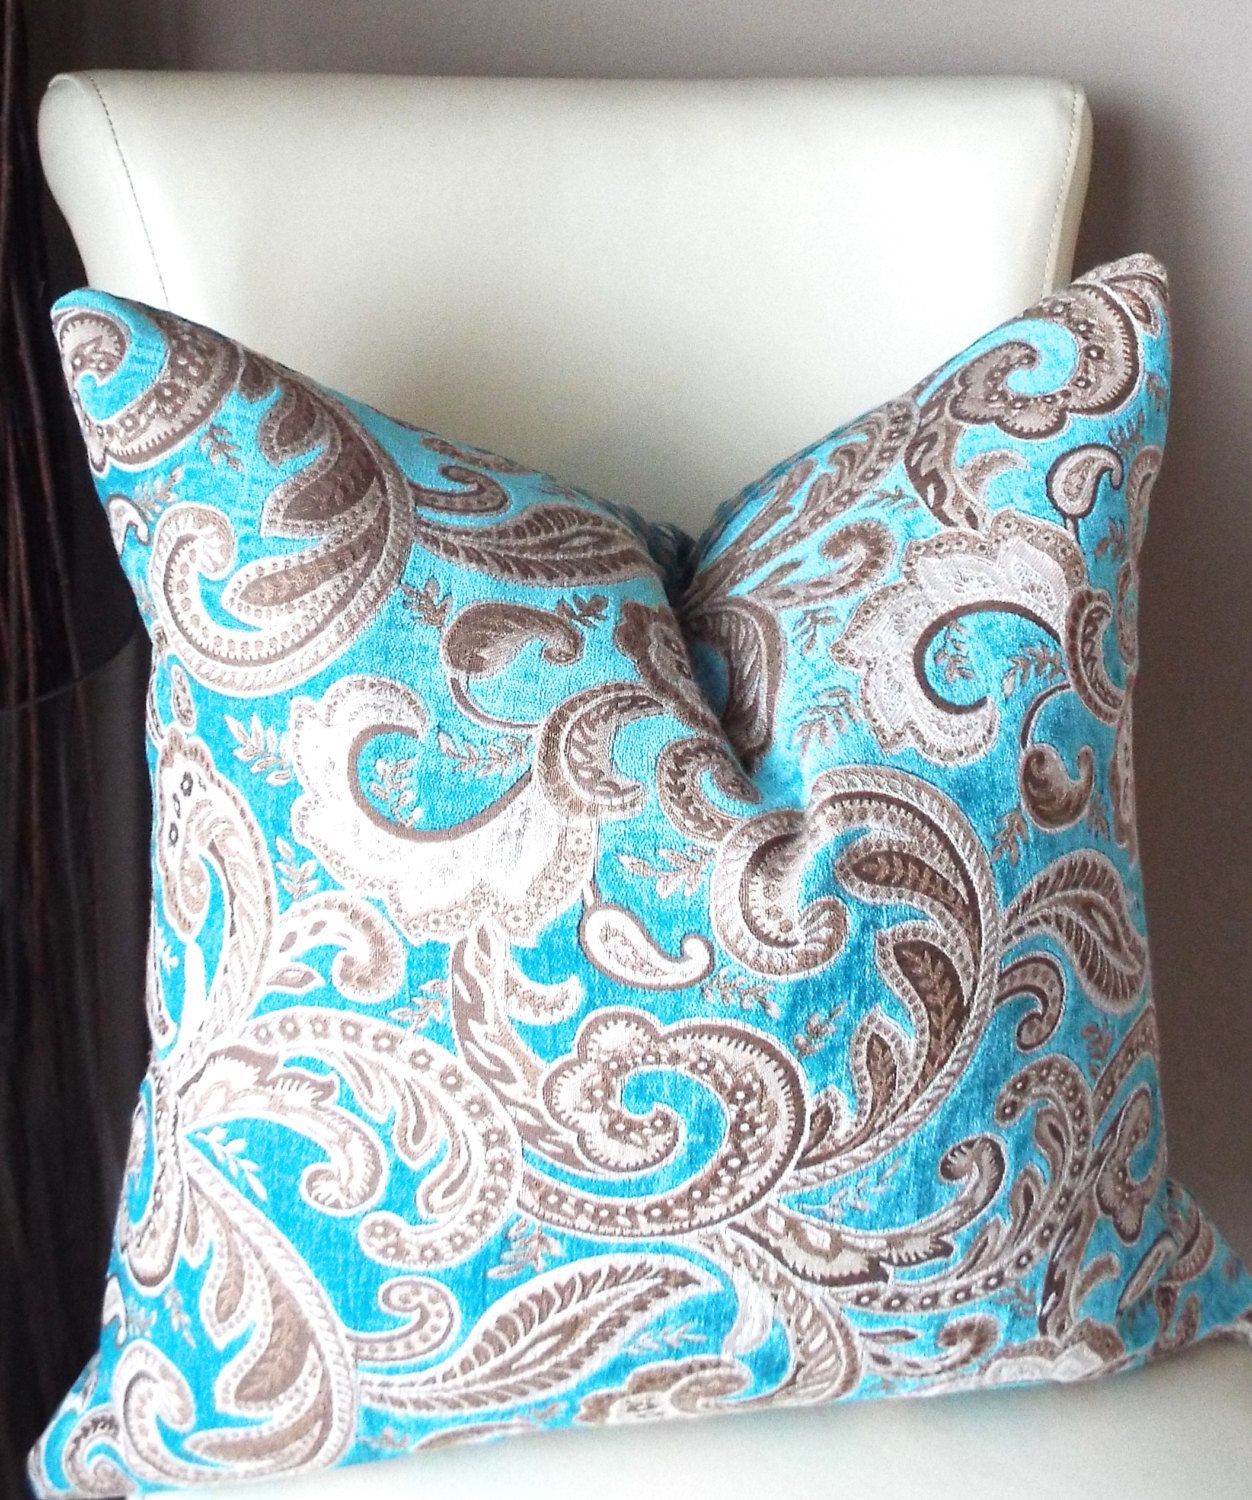 Turquoise Throw Pillow Cover Brown Pillow, Beige Throw Pillow, Paisley  Throw Pillow Cover